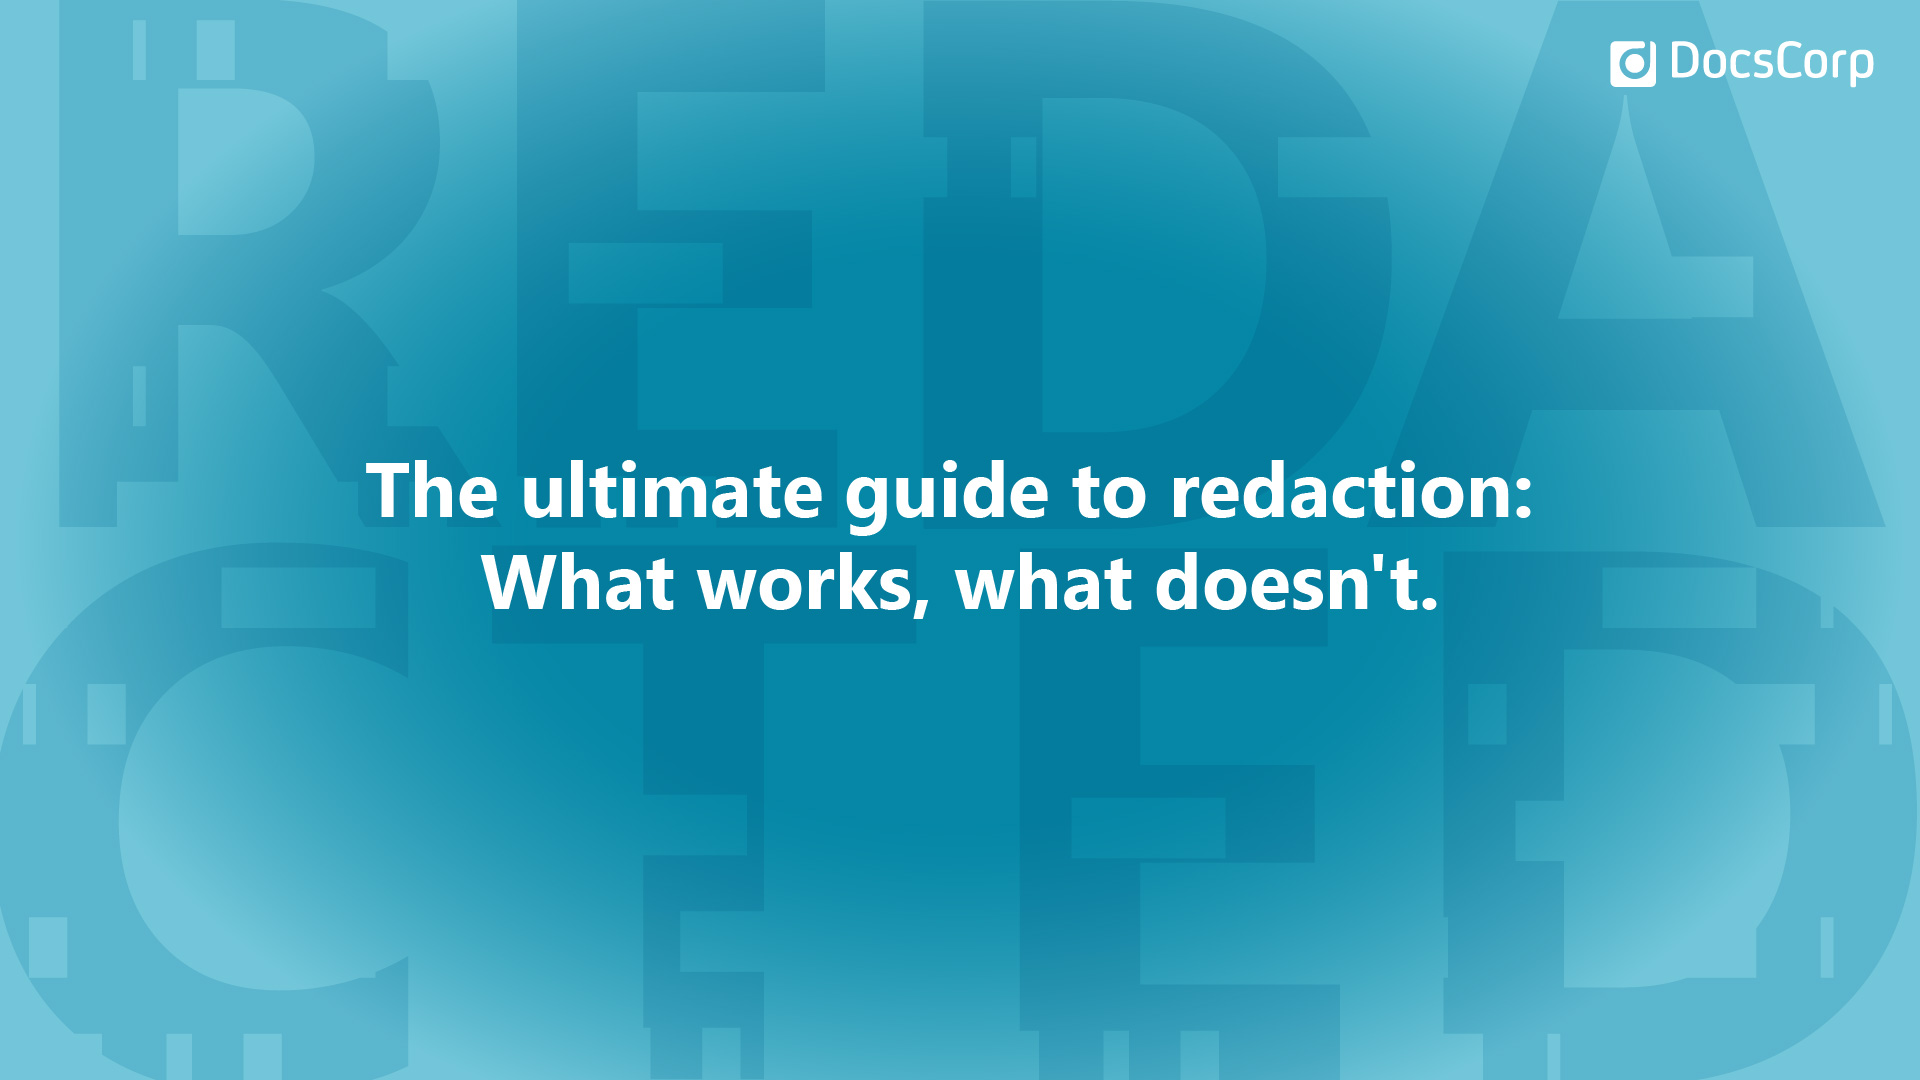 DocsCorp publishes industry guide to help everyone get redaction right